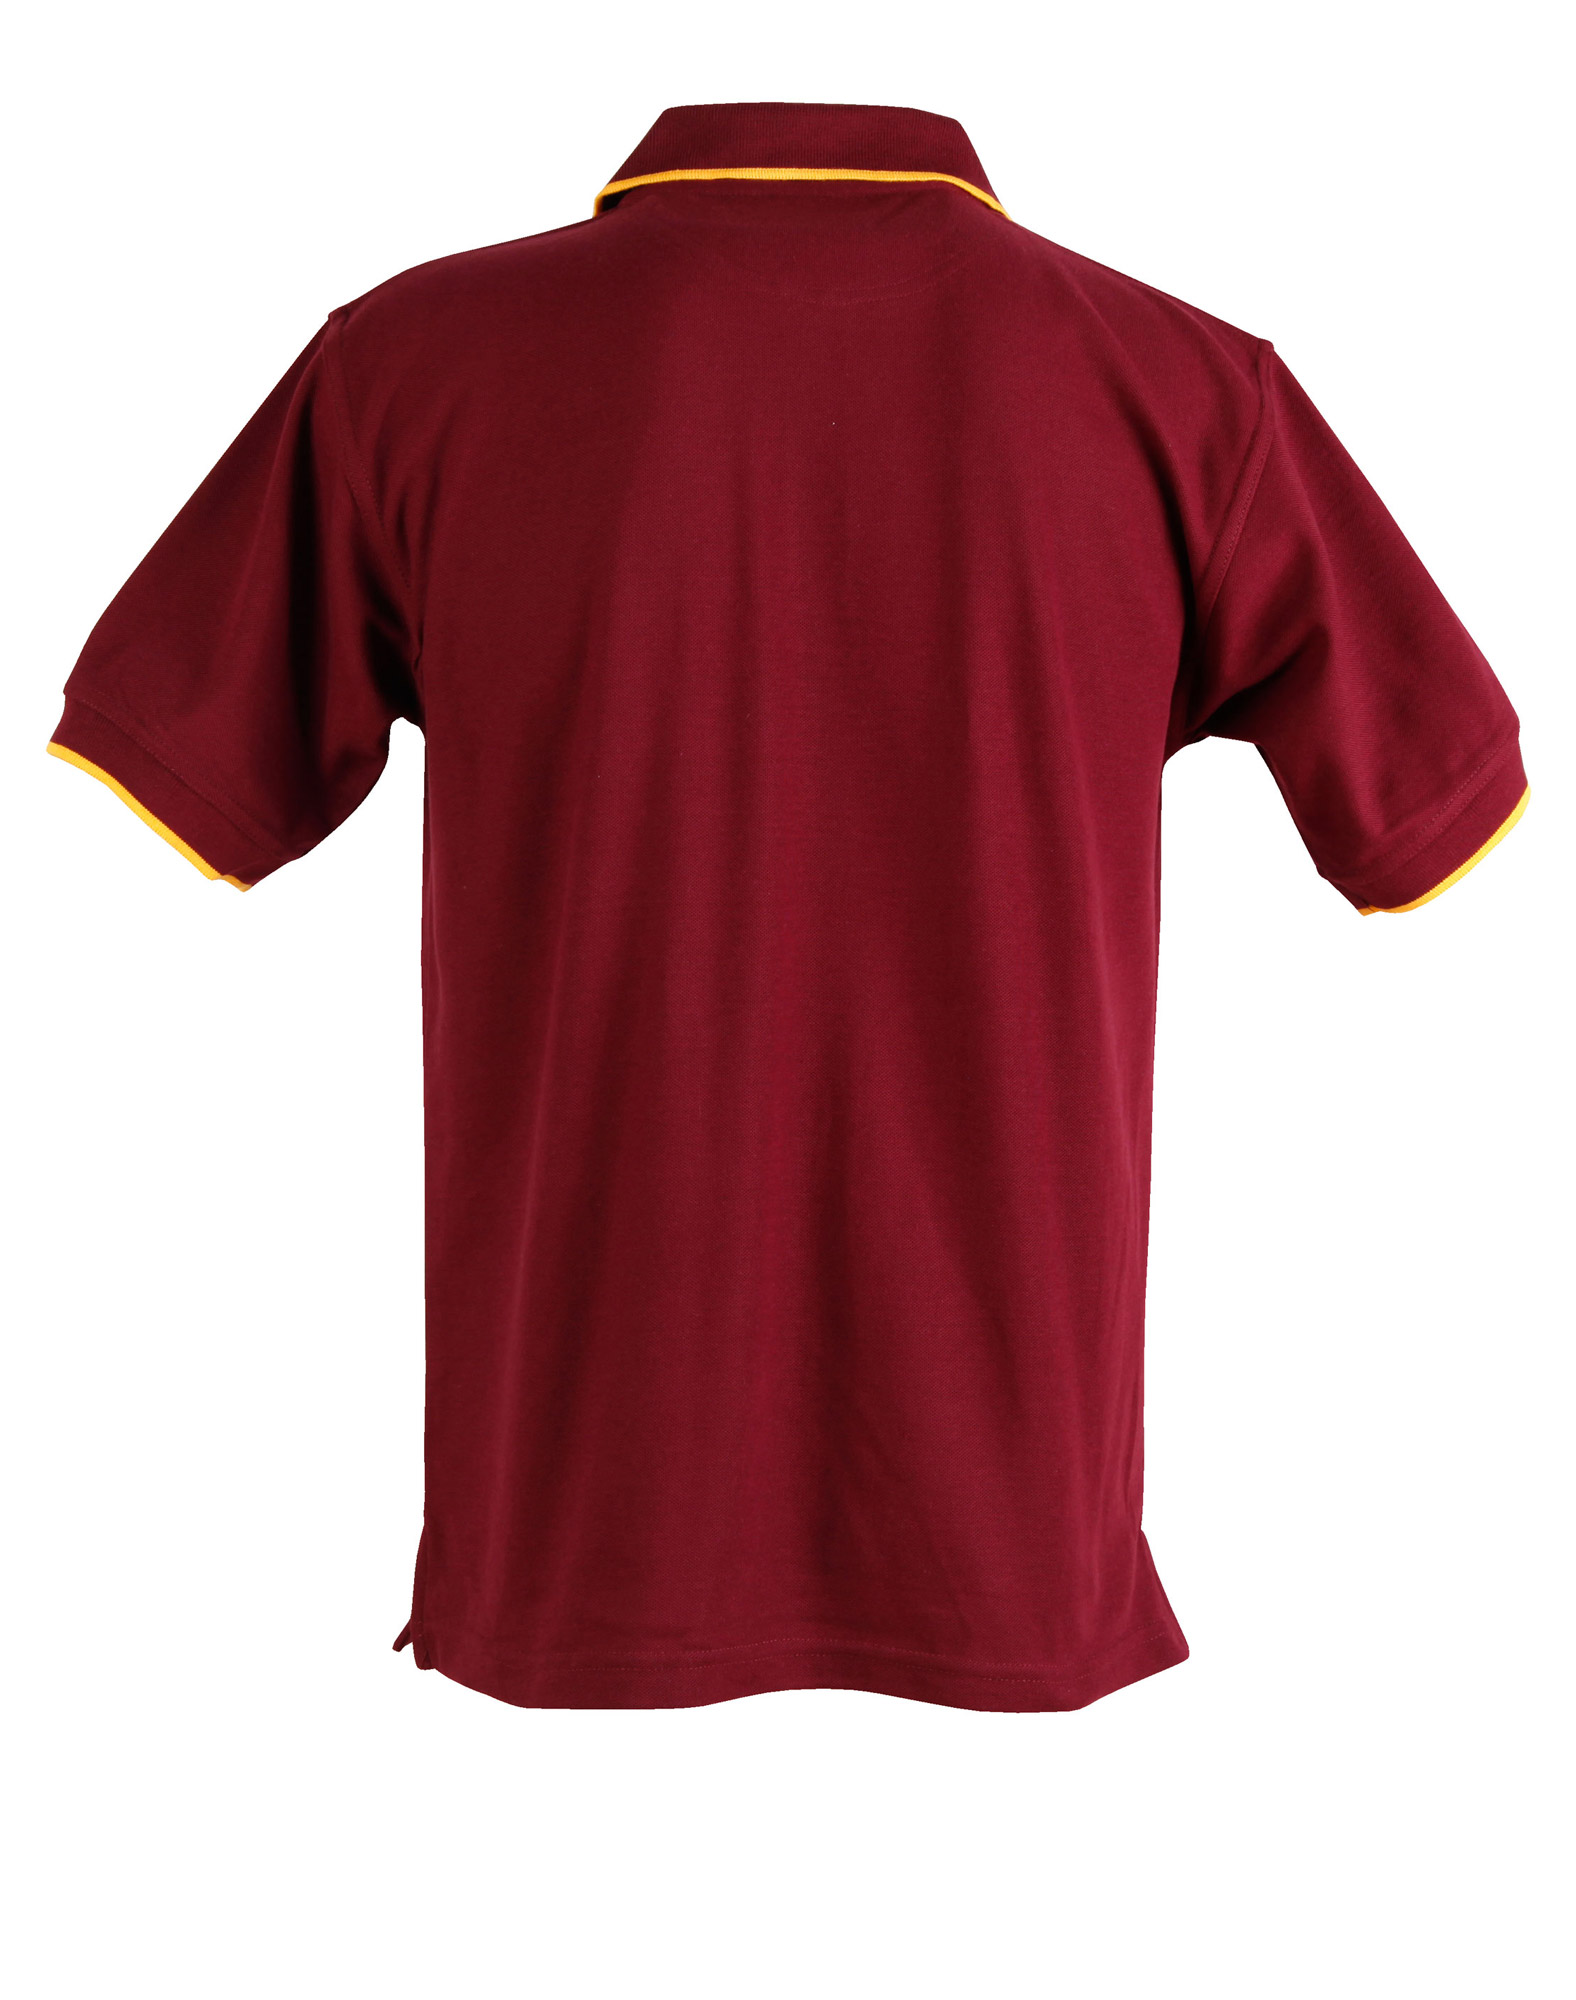 https://s3-ap-southeast-1.amazonaws.com/ws-imgs/POLOSHIRTS/PS08_MaroonGold_Back_l.jpg